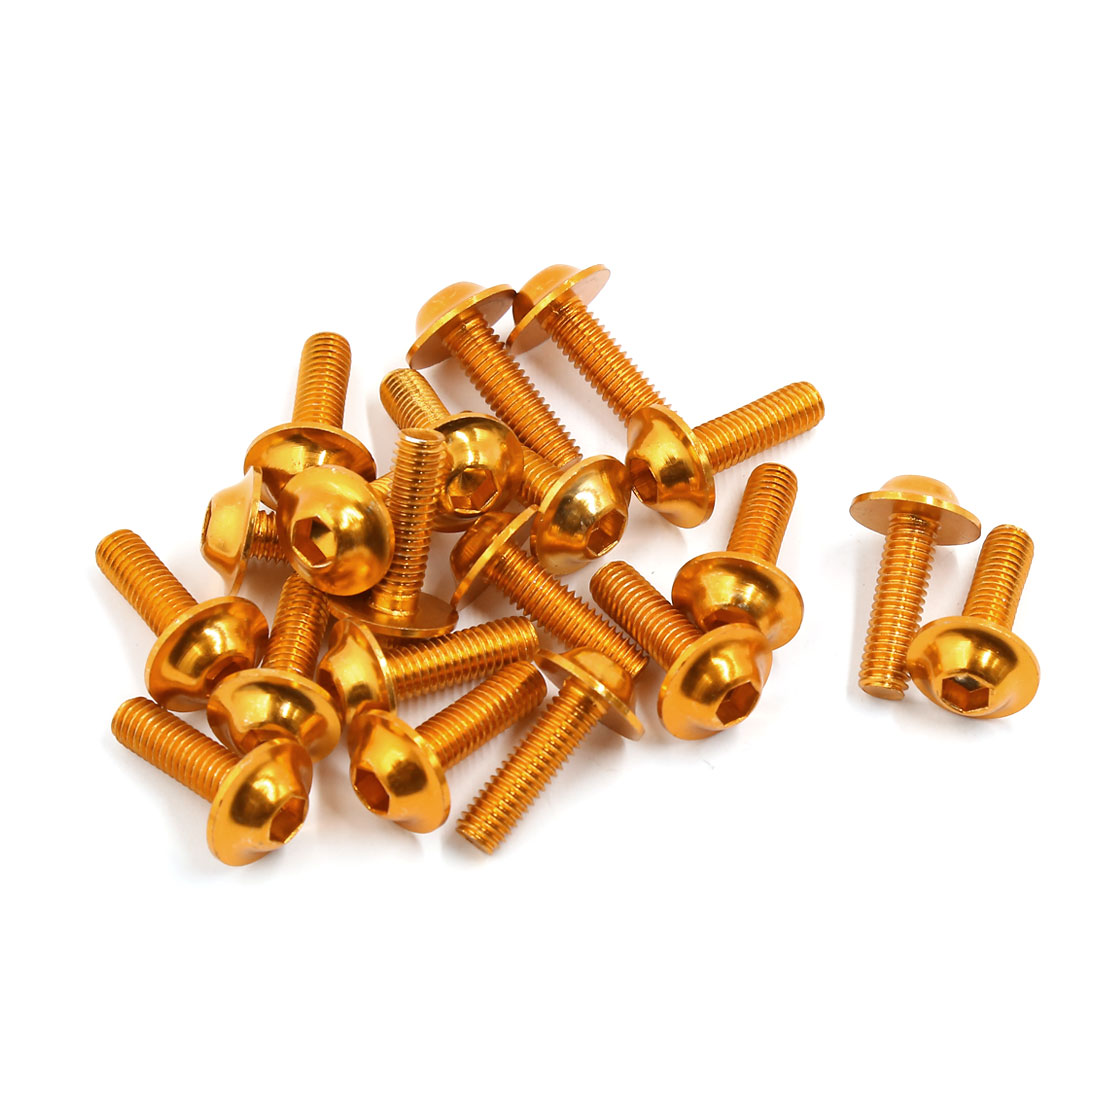 20pcs Gold Tone Aluminum Alloy Motorbike Sportbike Fairing Bolt Screw 6mm x 20mm